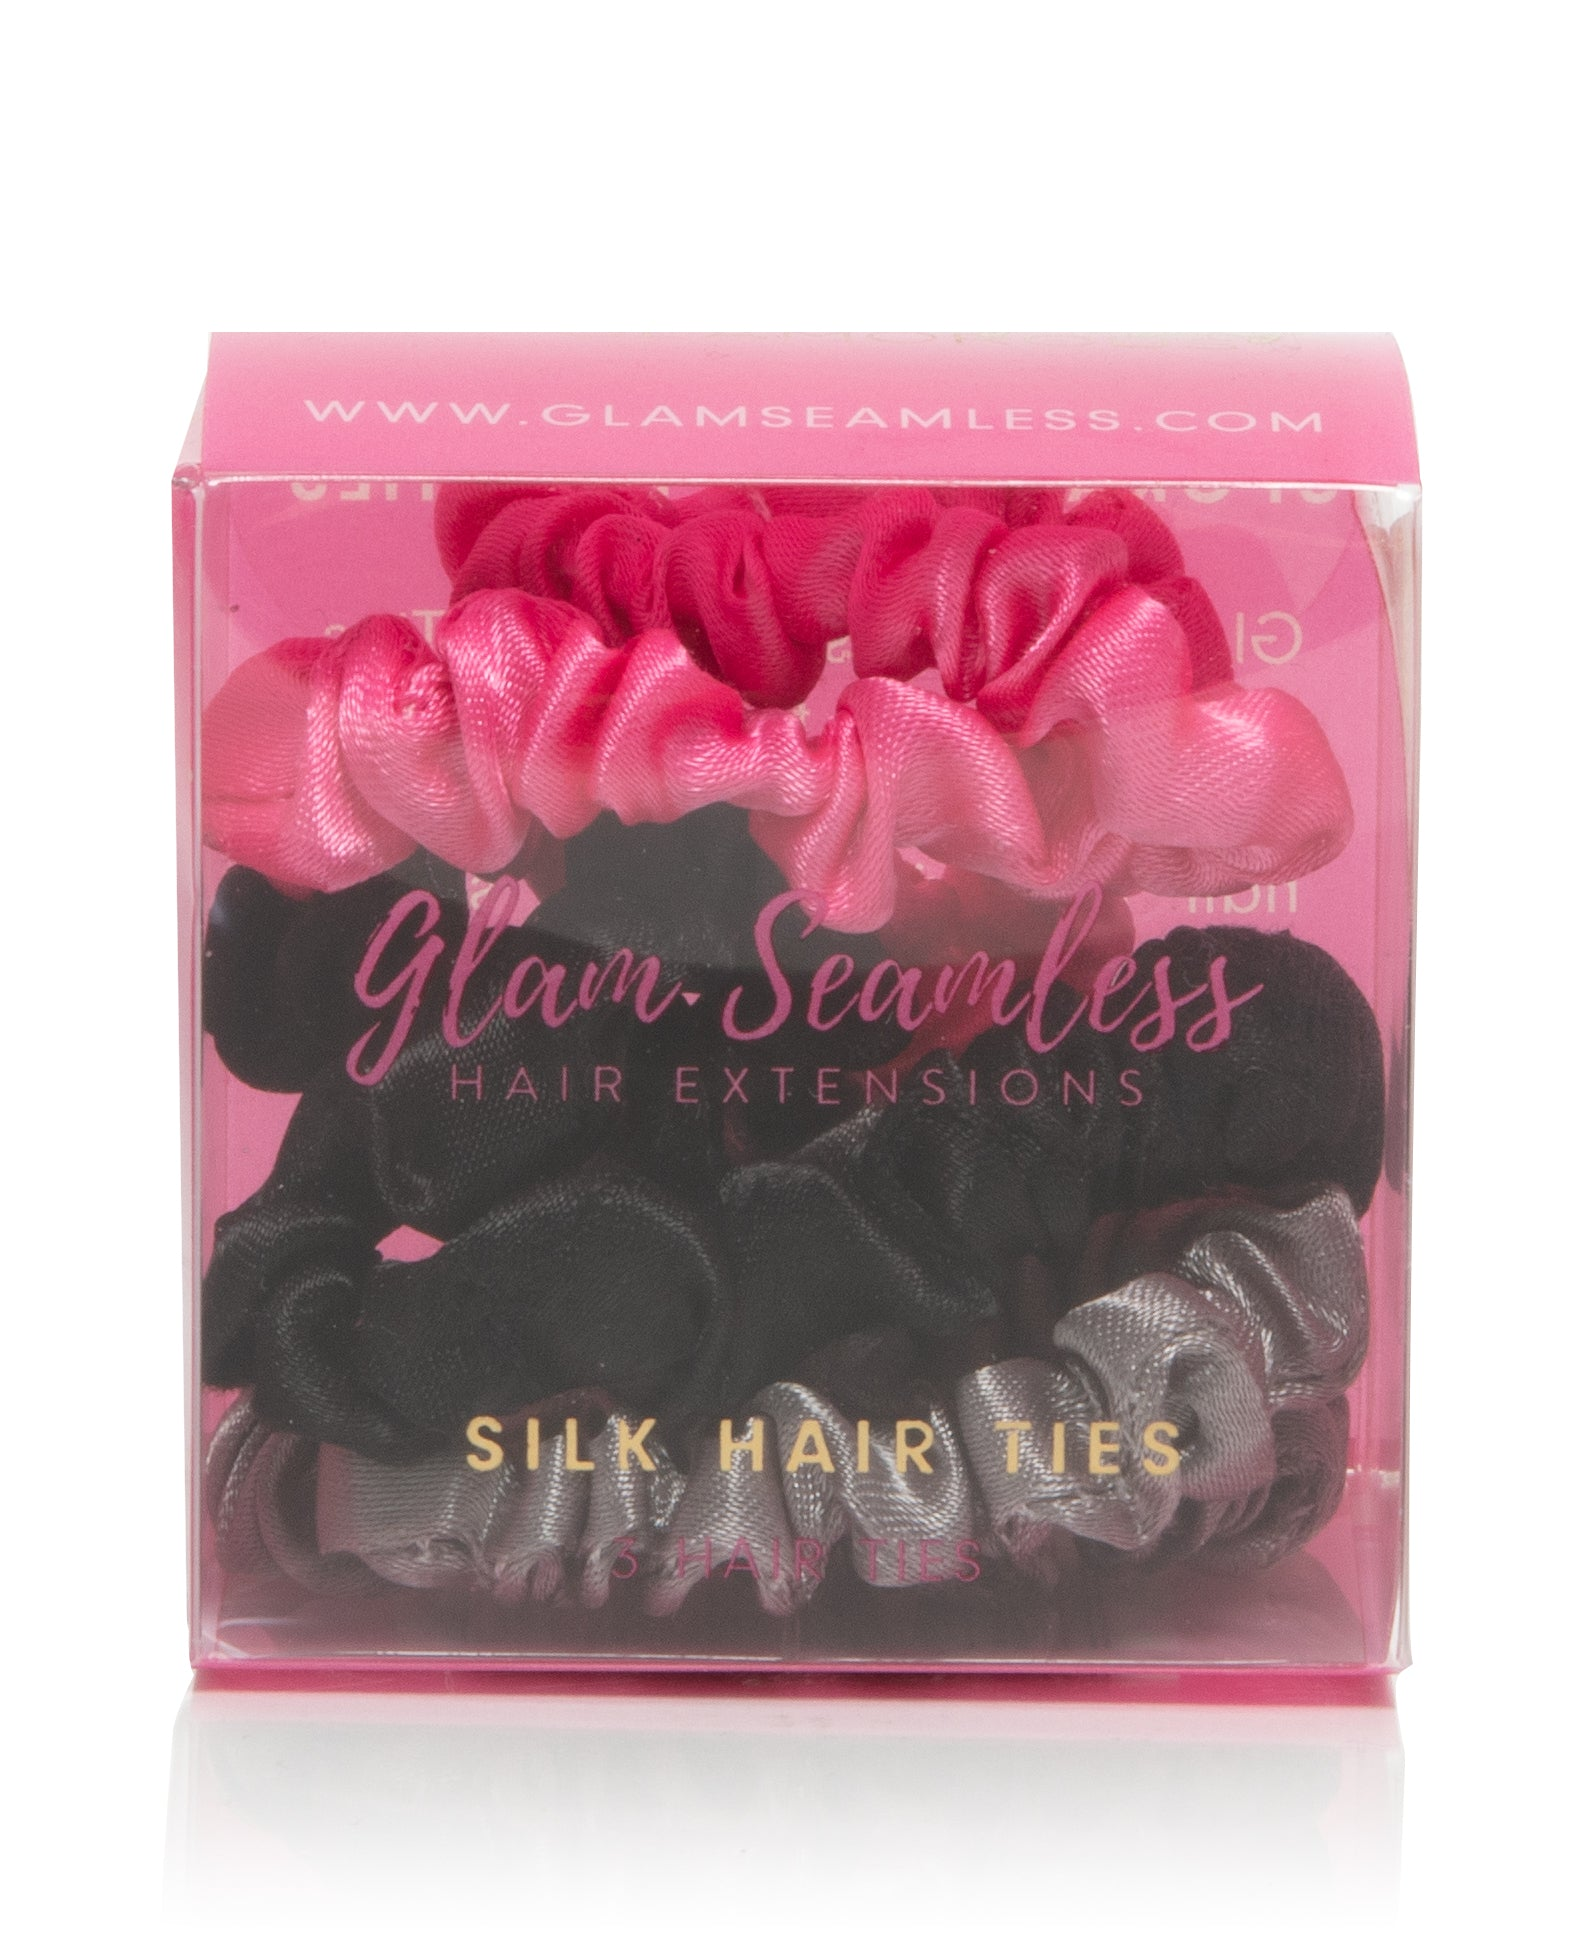 Glam Seamless Silky Hair Tie Set